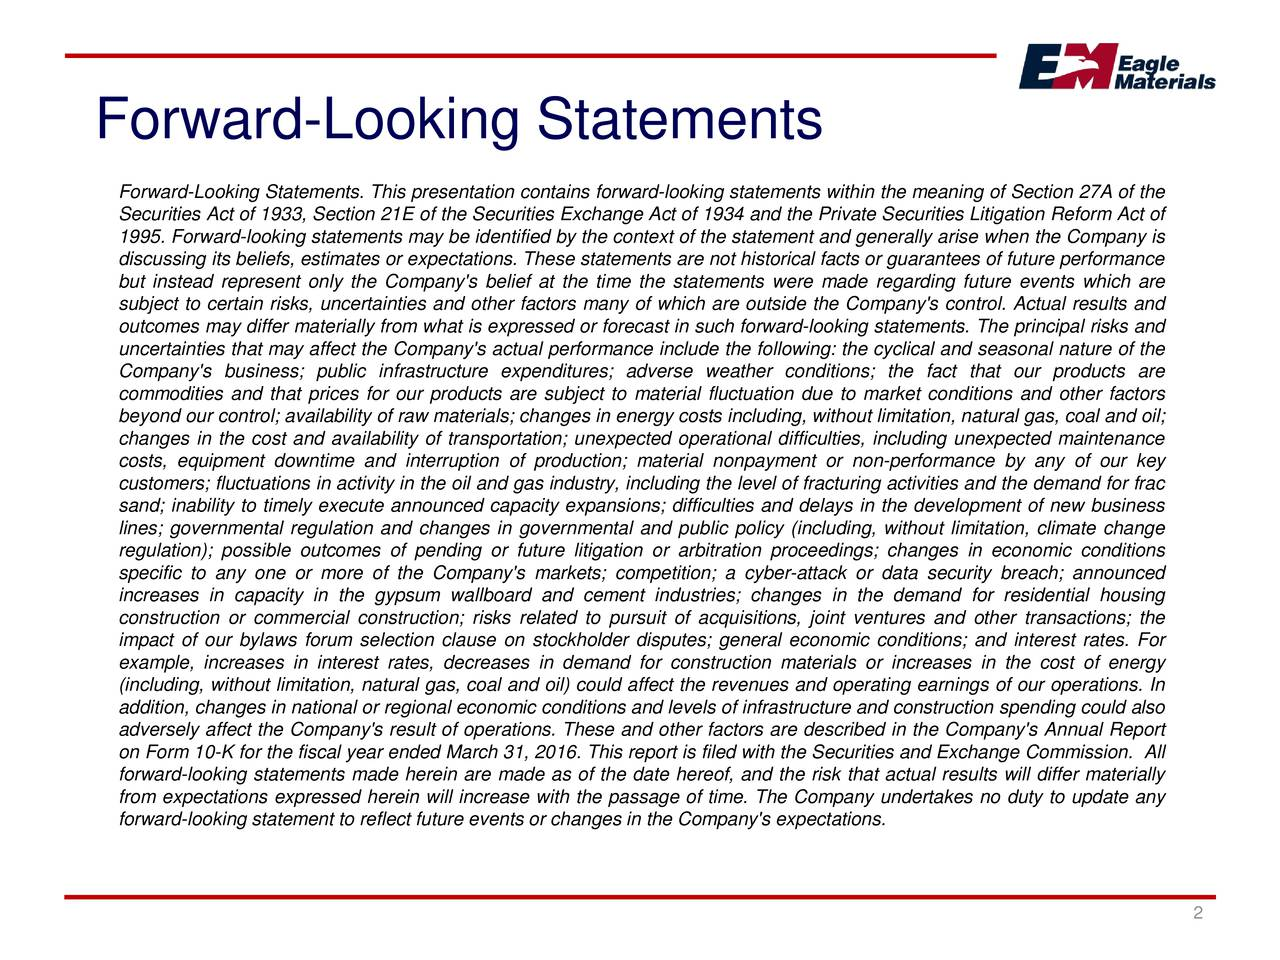 Forward-Looking Statements. This presentation contains forward-looking statements within the meaning of Section 27A of the Securities Act of 1933, Section 21E of the Securities Exchange Act of 1934 and the Private Securities Litigation Reform Act of 1995. Forward-looking statements may be identified by the context of the statement and generally arise when the Company is discussing its beliefs, estimates or expectations. These statements are not historical facts or guarantees of future performance but instead represent only the Company's belief at the time the statements were made regarding future events which are subject to certain risks, uncertainties and other factors many of which are outside the Company's control. Actual results and outcomes may differ materially from what is expressed or forecast in such forward-looking statements. The principal risks and uncertainties that may affect the Company's actual performance include the following: the cyclical and seasonal nature of the Company's business; public infrastructure expenditures; adverse weather conditions; the fact that our products are commodities and that prices for our products are subject to material fluctuation due to market conditions and other factors beyond our control; availability of raw materials; changes in energy costs including, without limitation, natural gas, coal and oil; changes in the cost and availability of transportation; unexpected operational difficulties, including unexpected maintenance costs, equipment downtime and interruption of production; material nonpayment or non-performance by any of our key customers; fluctuations in activity in the oil and gas industry, including the level of fracturing activities and the demand for frac sand; inability to timely execute announced capacity expansions; difficulties and delays in the development of new business lines; governmental regulation and changes in governmental and public policy (including, without limitation, climate change regula